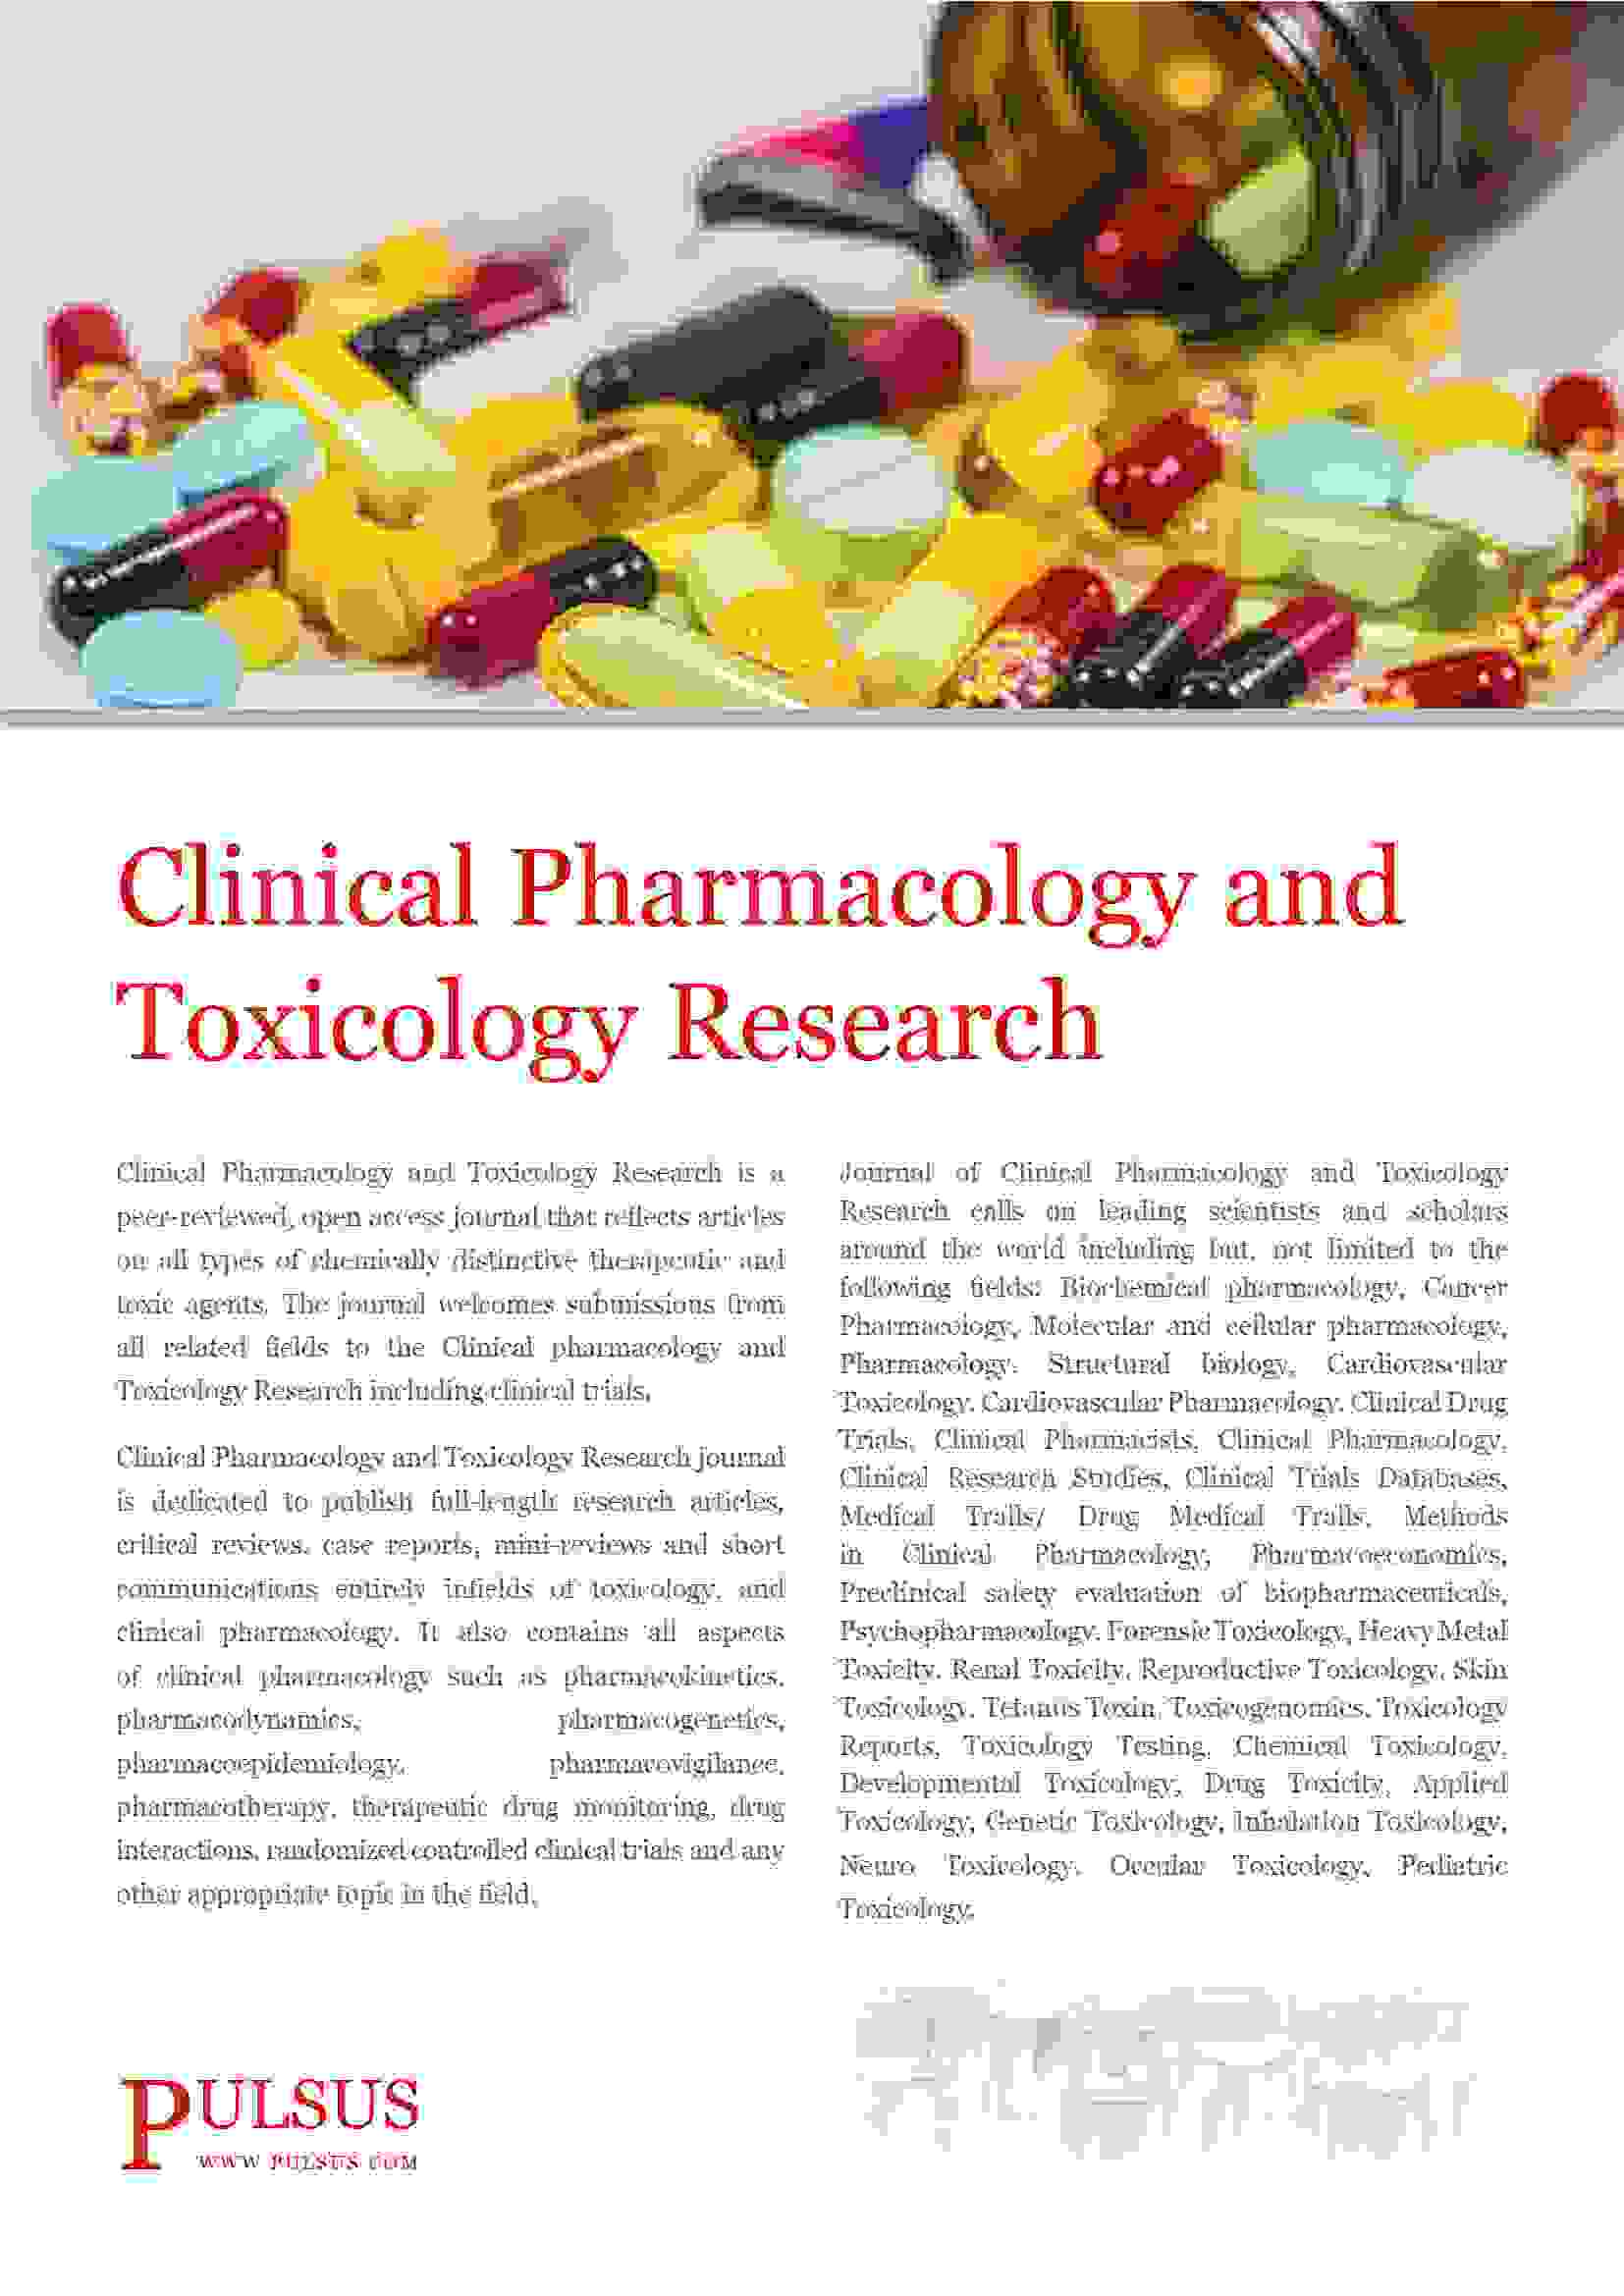 clinical pharmacology and toxicology